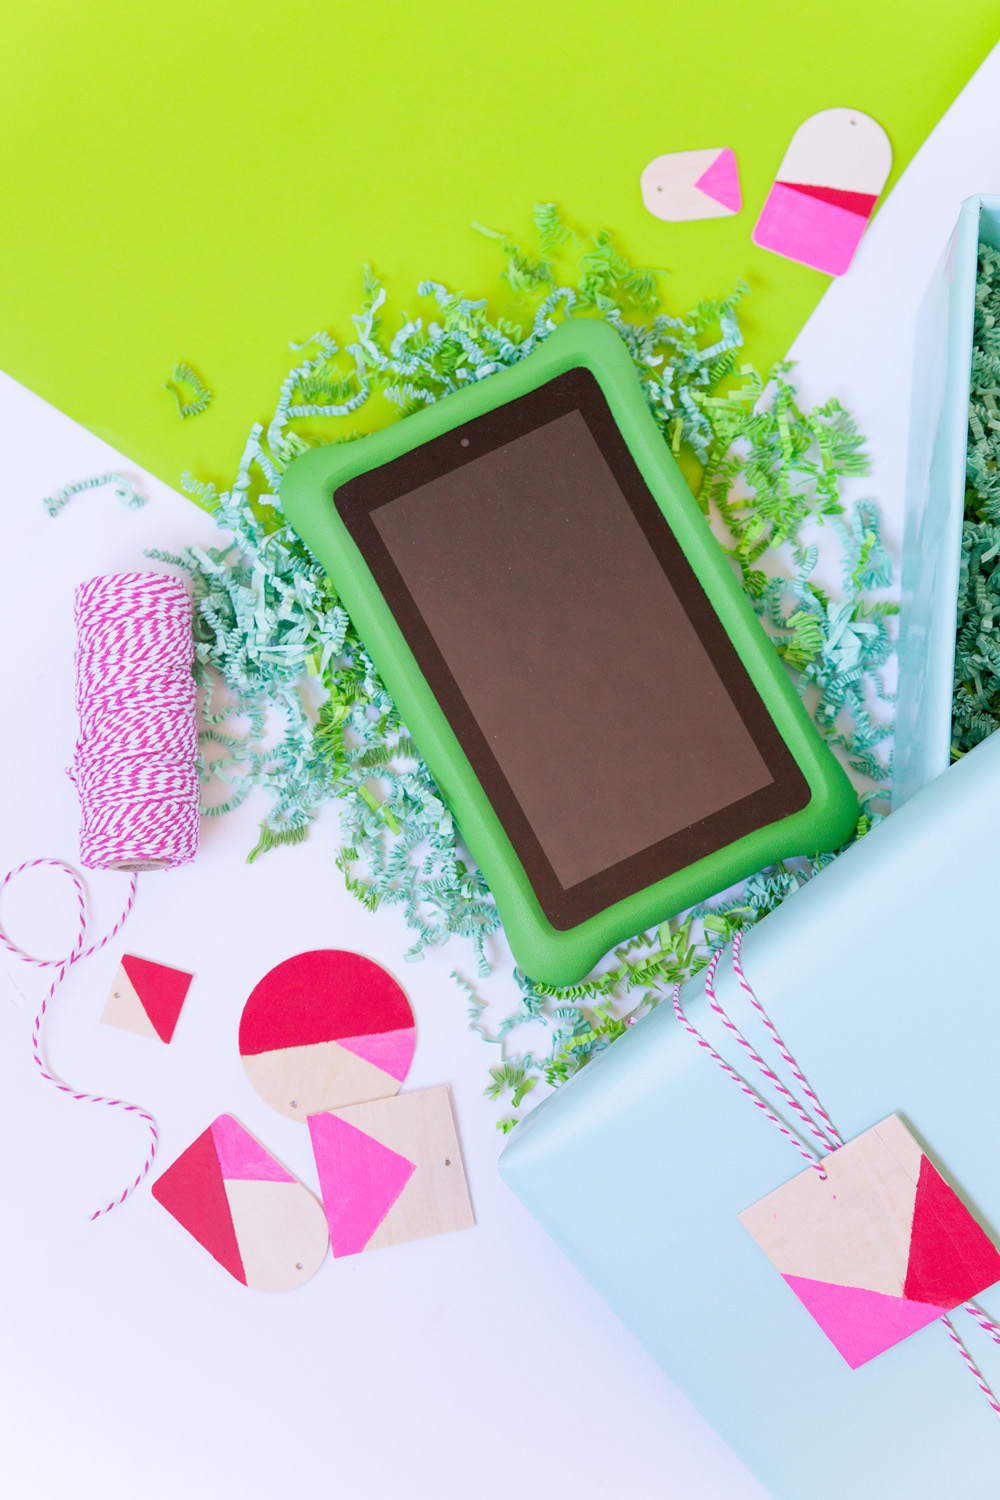 amazon fire tablet as a gift